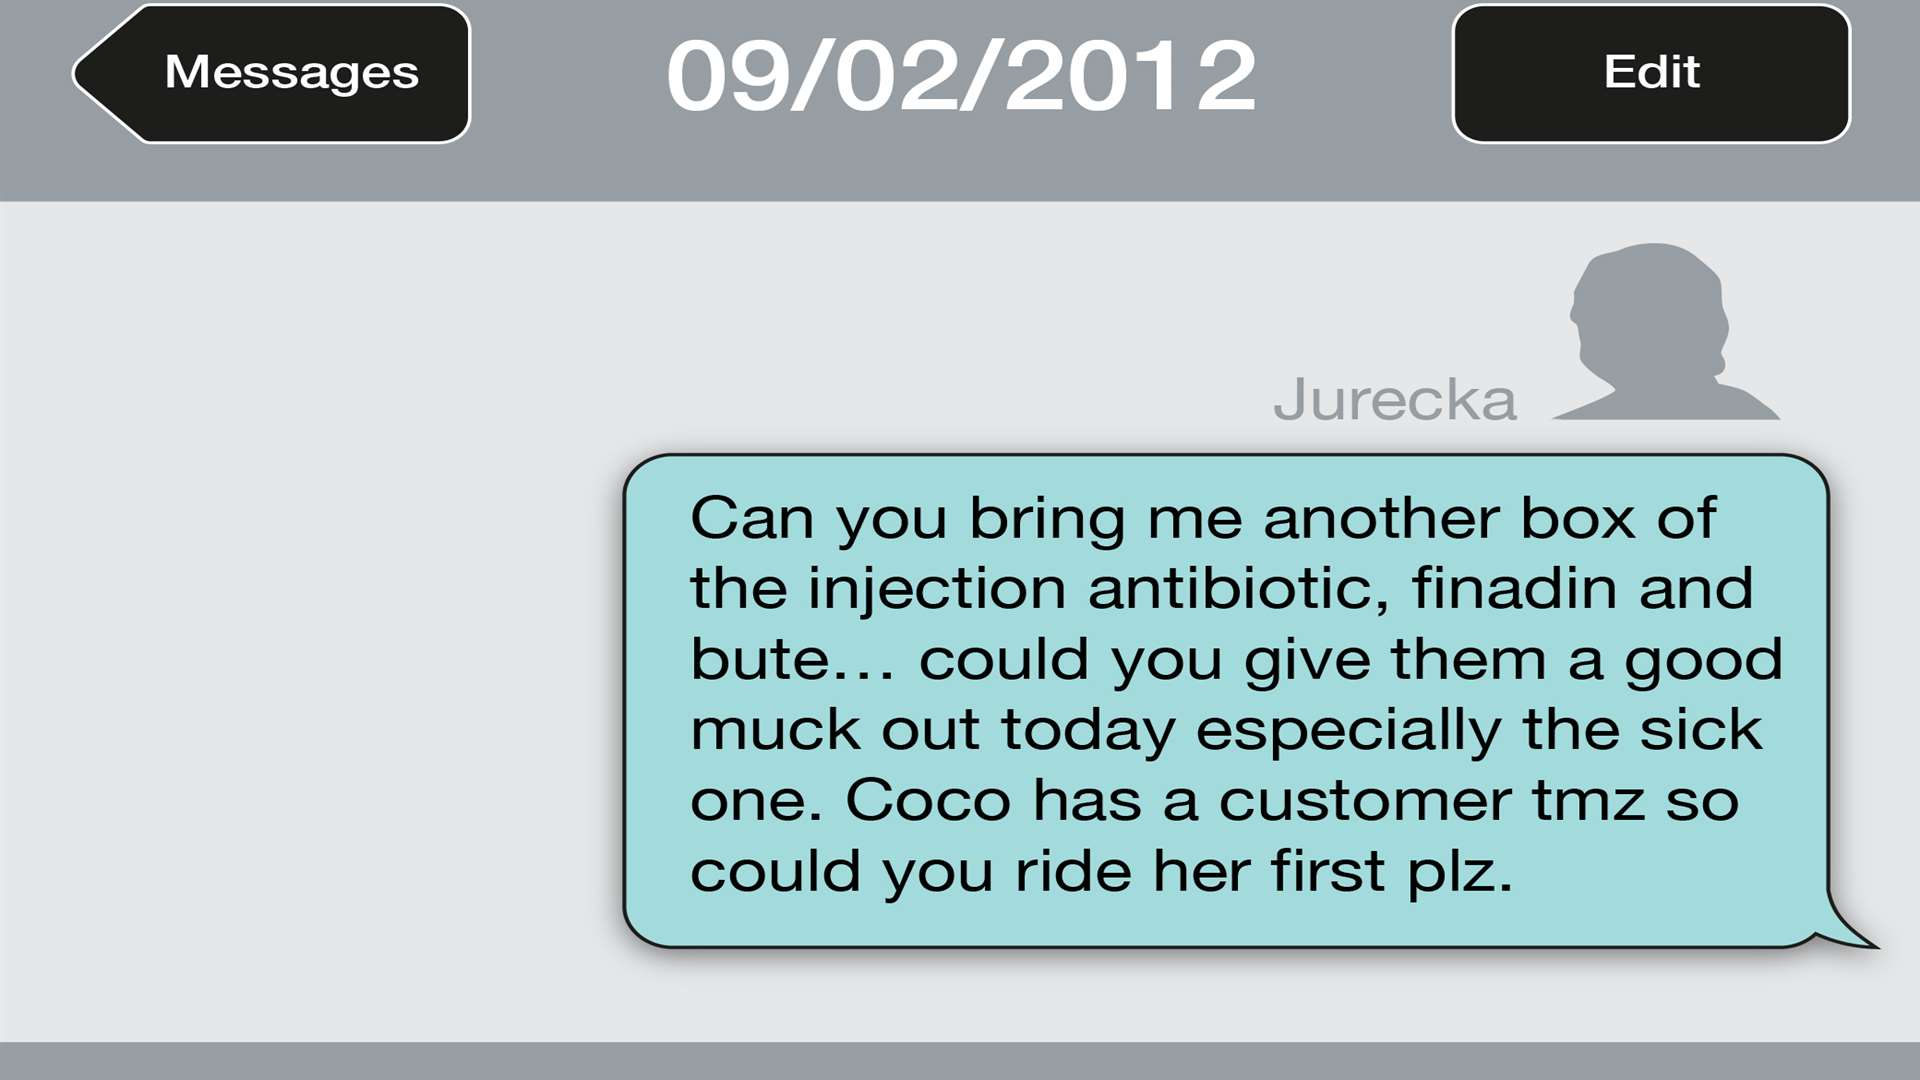 A text message sent by Jurecka